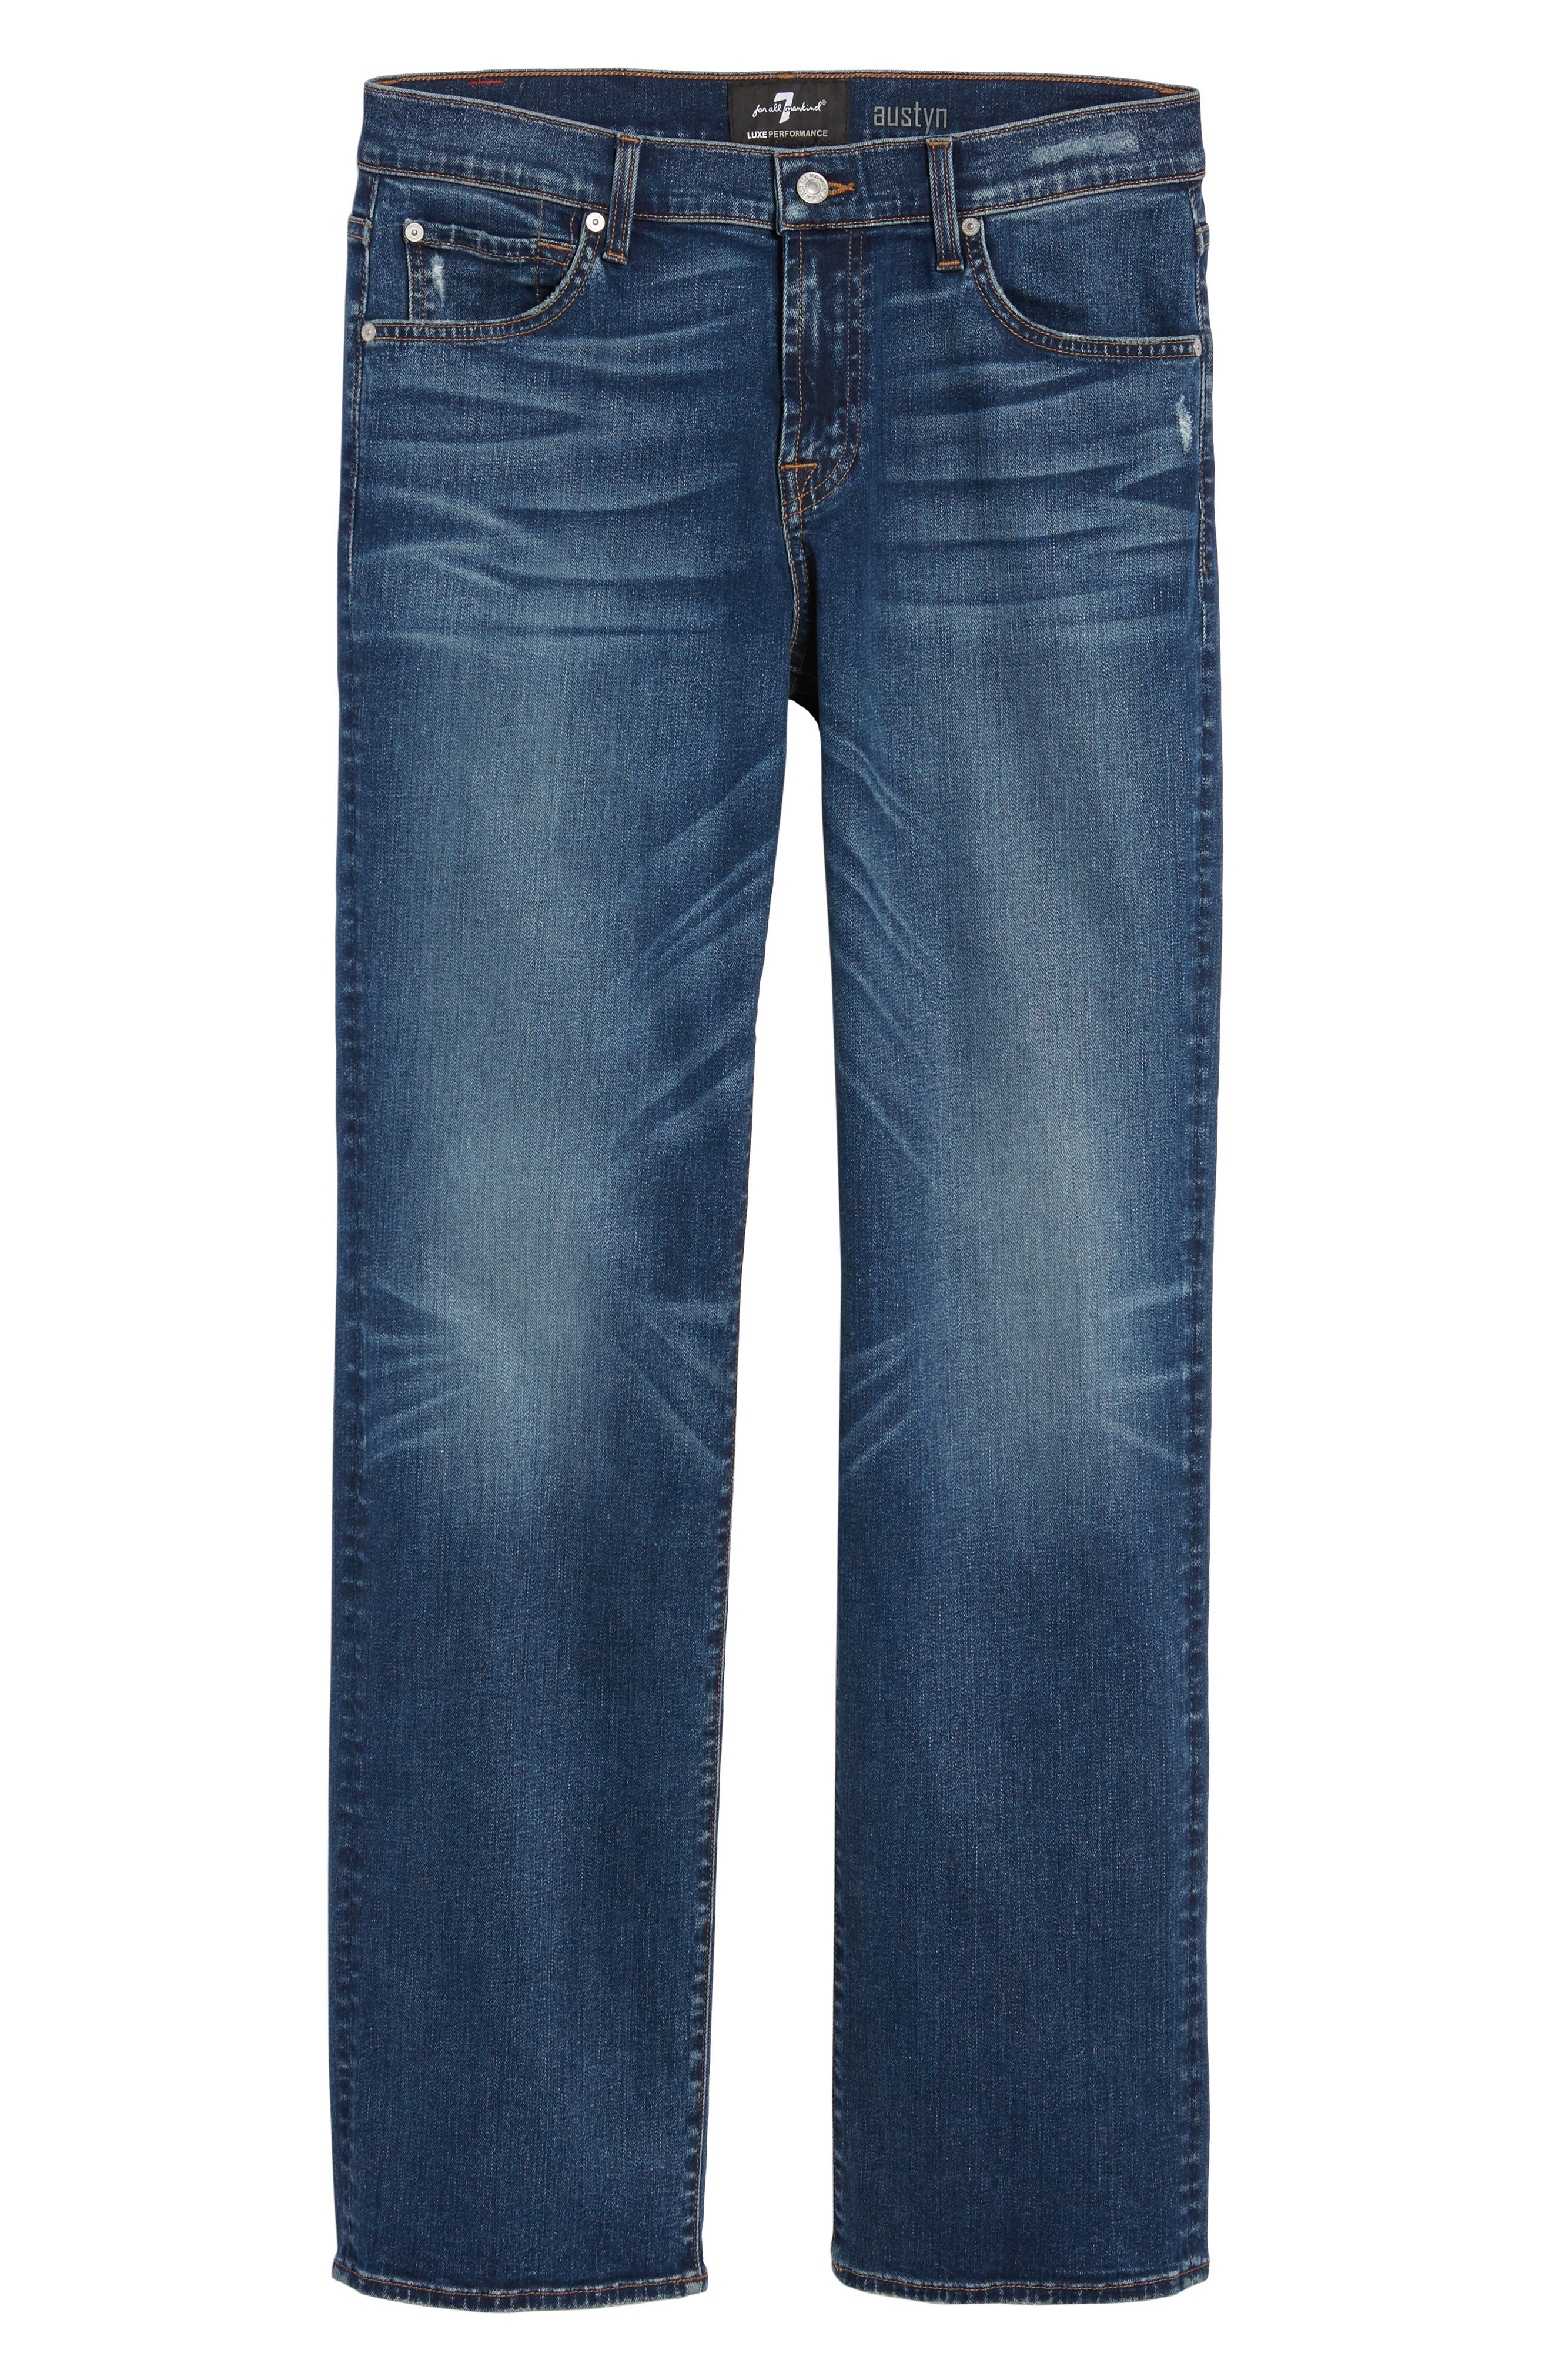 Luxe Performance - Austyn Relaxed Fit Jeans,                             Alternate thumbnail 6, color,